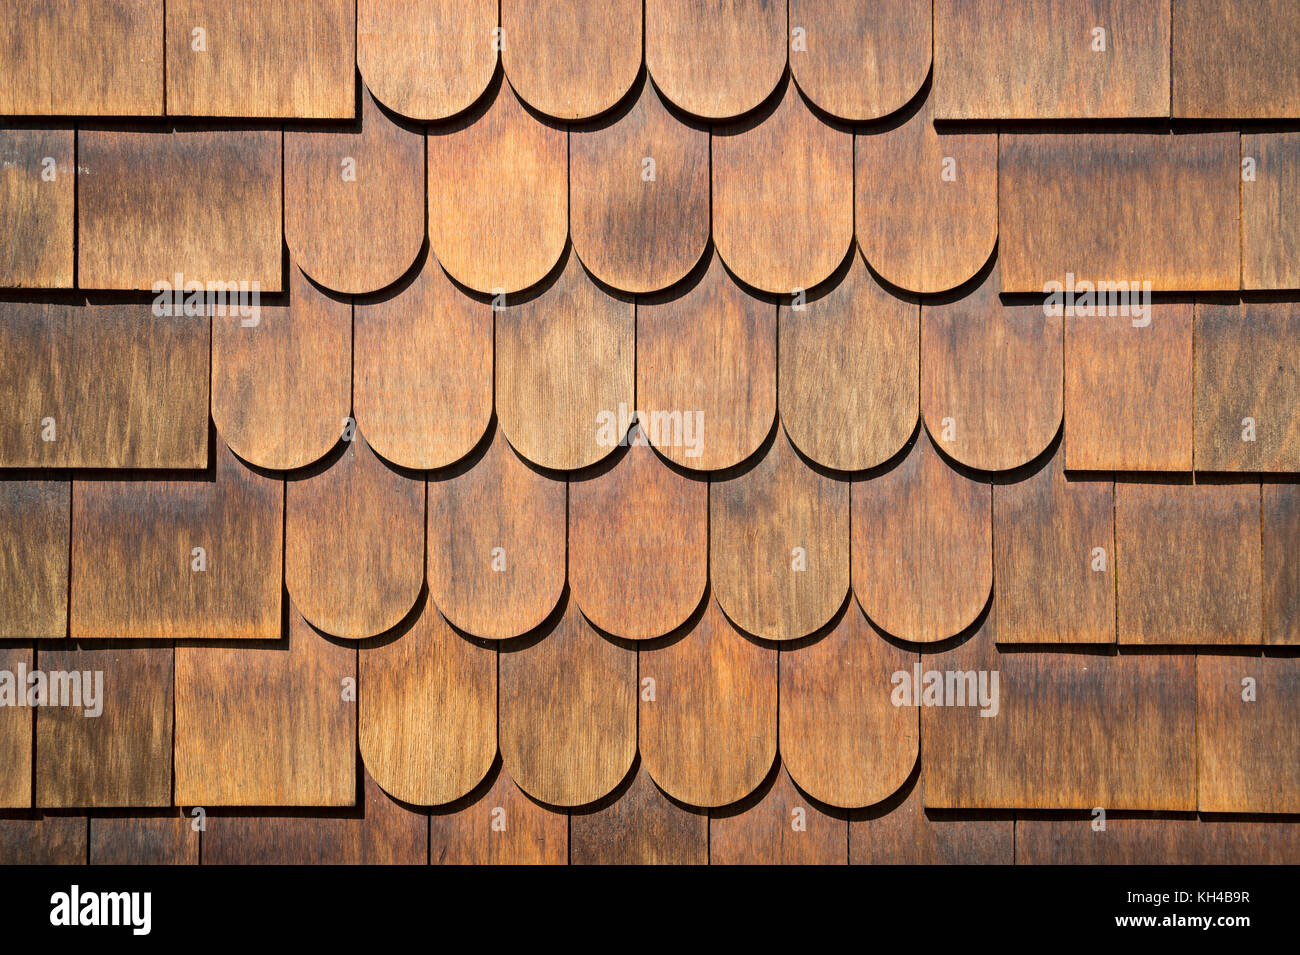 Abstract close-up view of classic half-rounded cedar shingle siding. - Stock Image